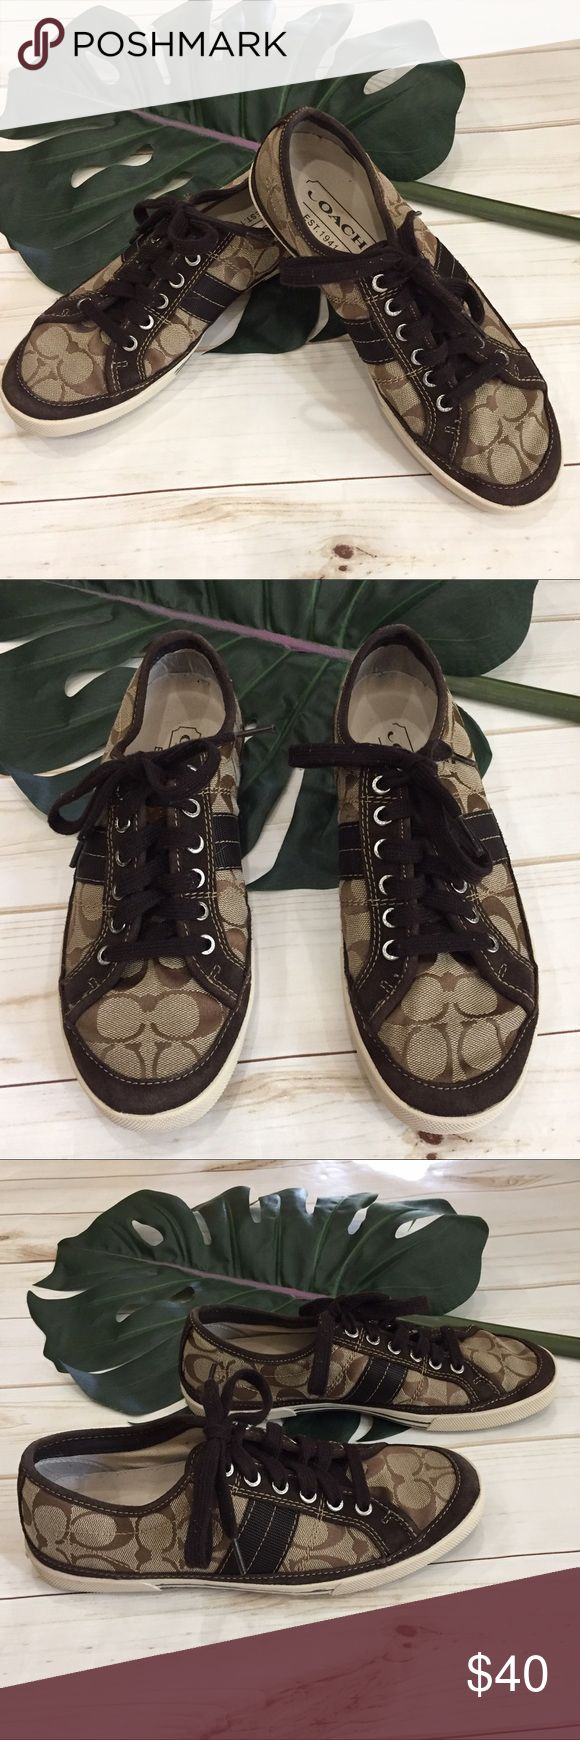 "👞MEN'S Coach ""Paul"" canvas tennis shoe. 👞MEN'S Coach ""Paul"" canvas tennis shoe. These are canvas with leather accented men's Coach tennis shoes. They are super comfy. Previously loved in good condition. Canvas and leather are excellent. Some fading in rubber stripes on sides. Shown in last pic. Coach Shoes Sneakers"